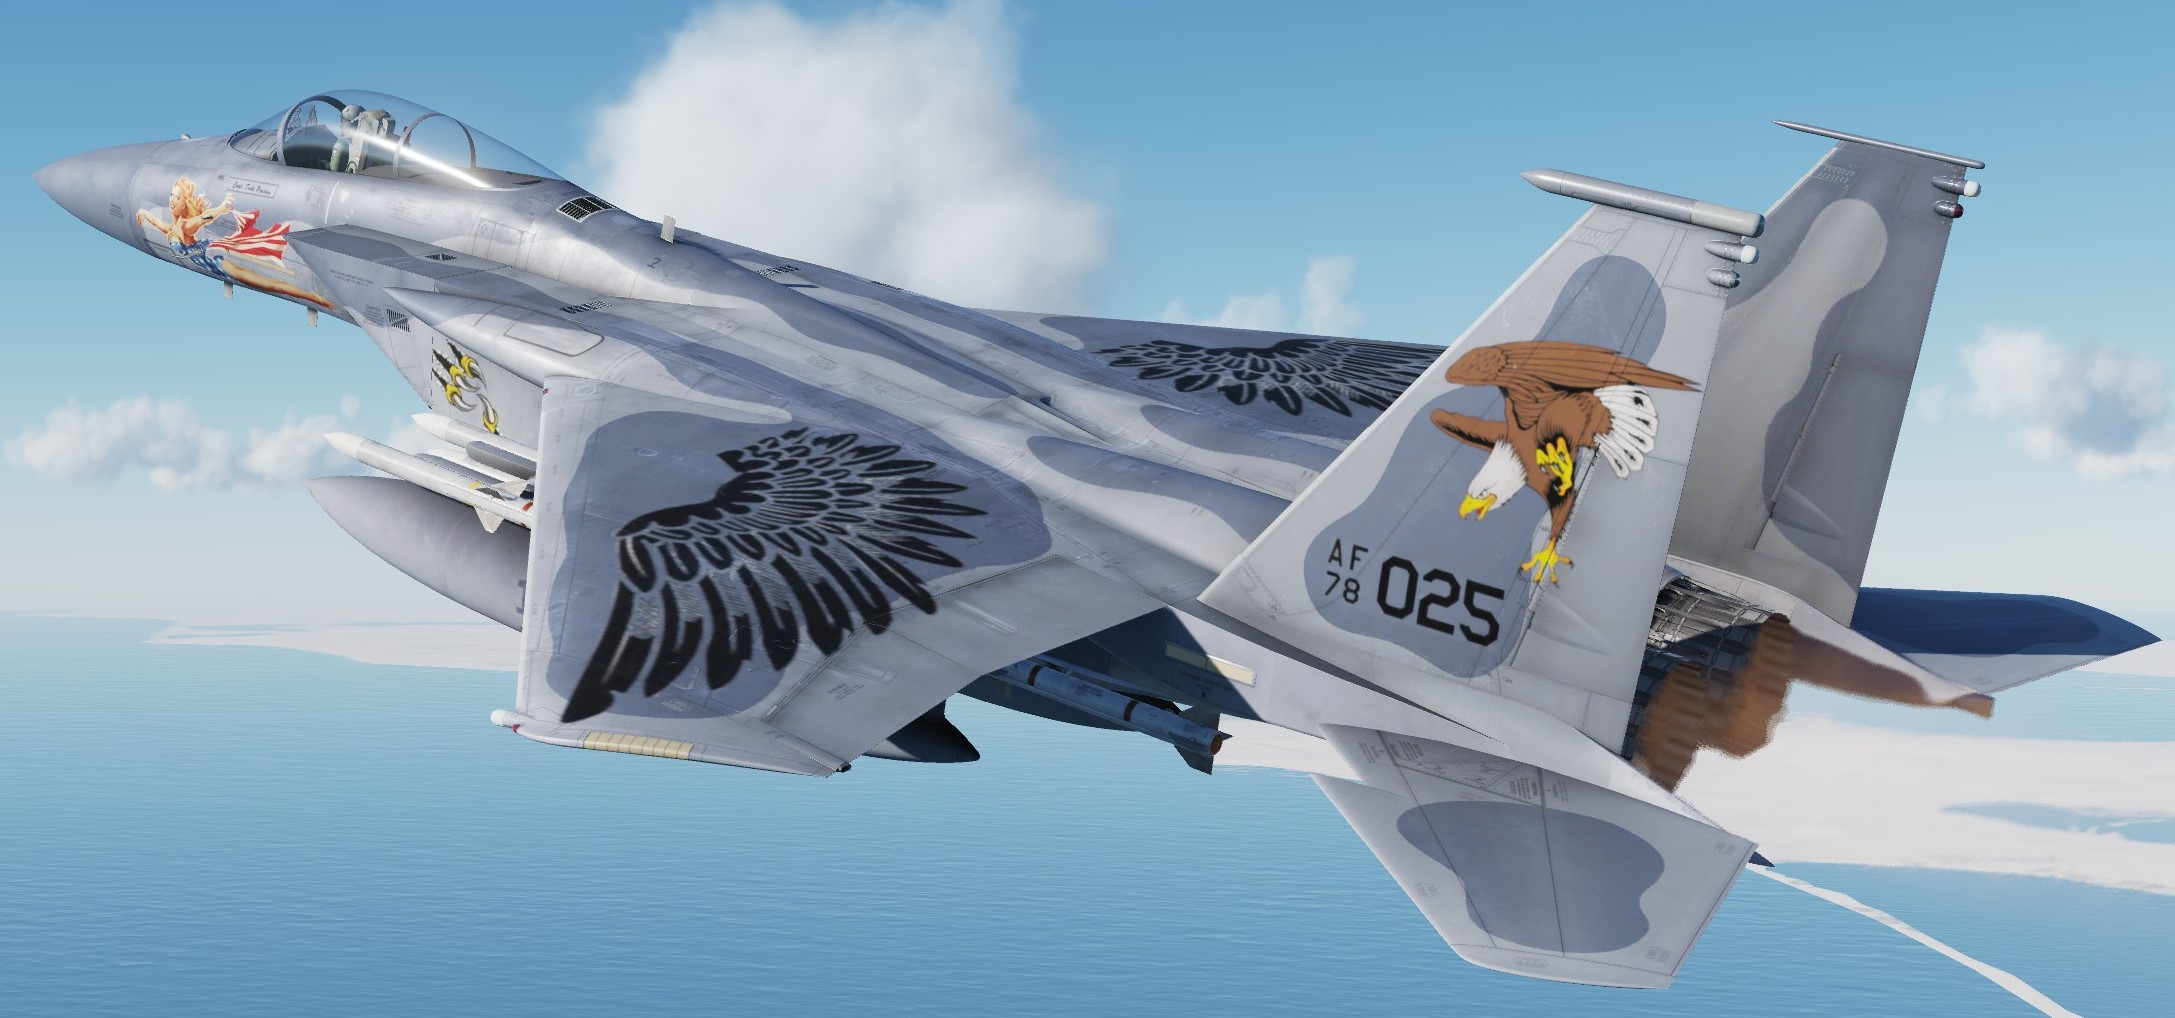 F-15C 104-0 All Hail To The King